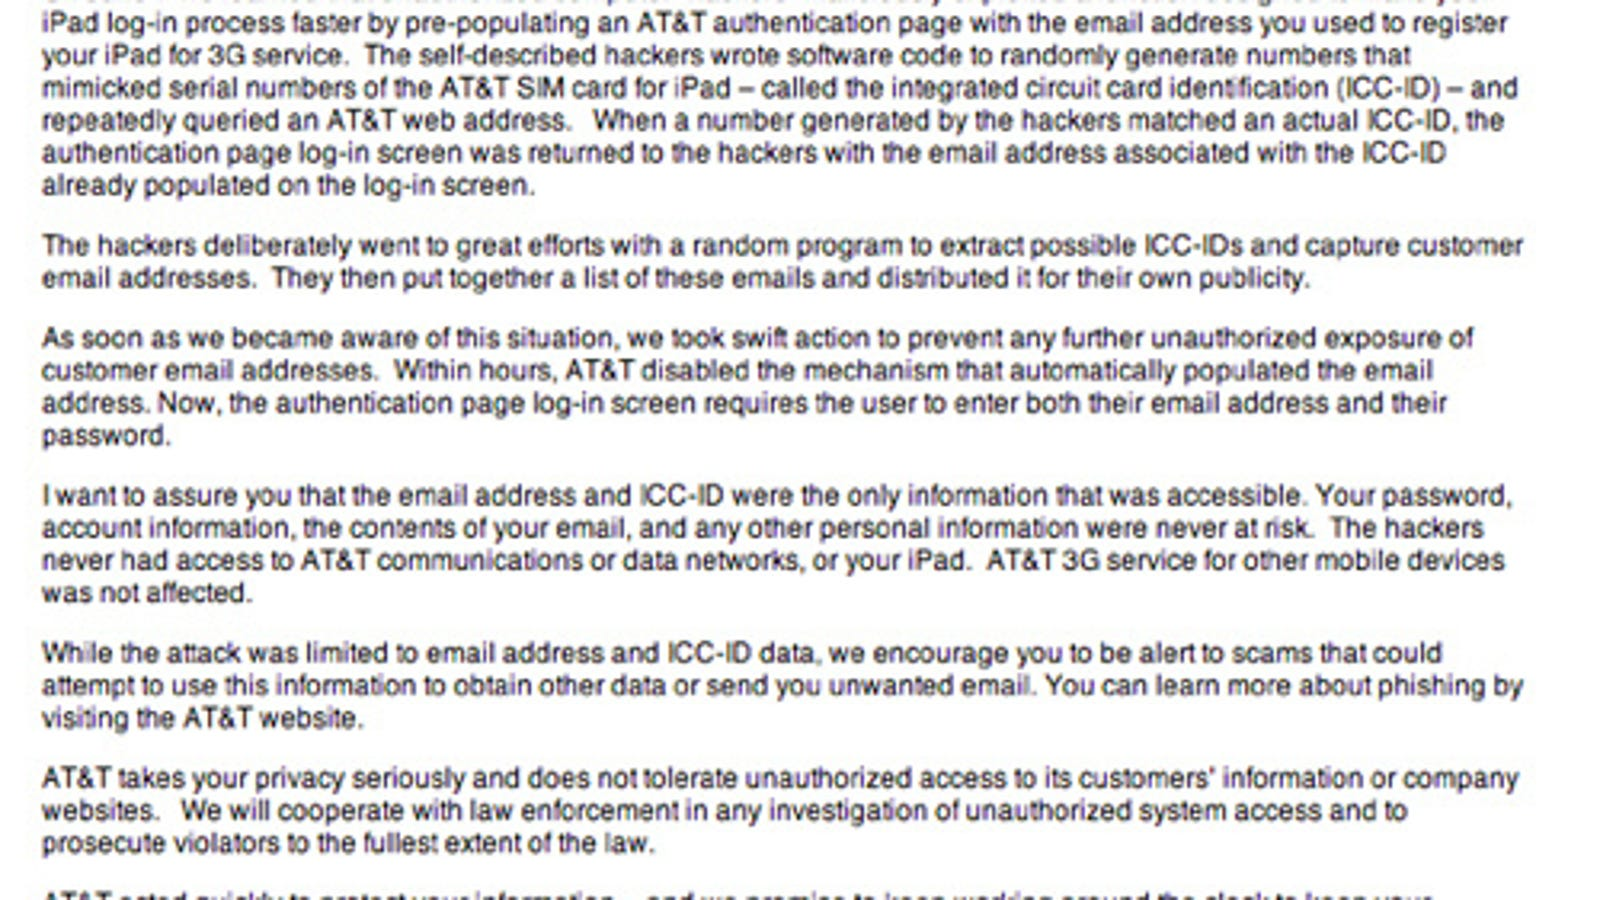 AT&T Sends Out Apologetic Email To iPad Security Breach-ees